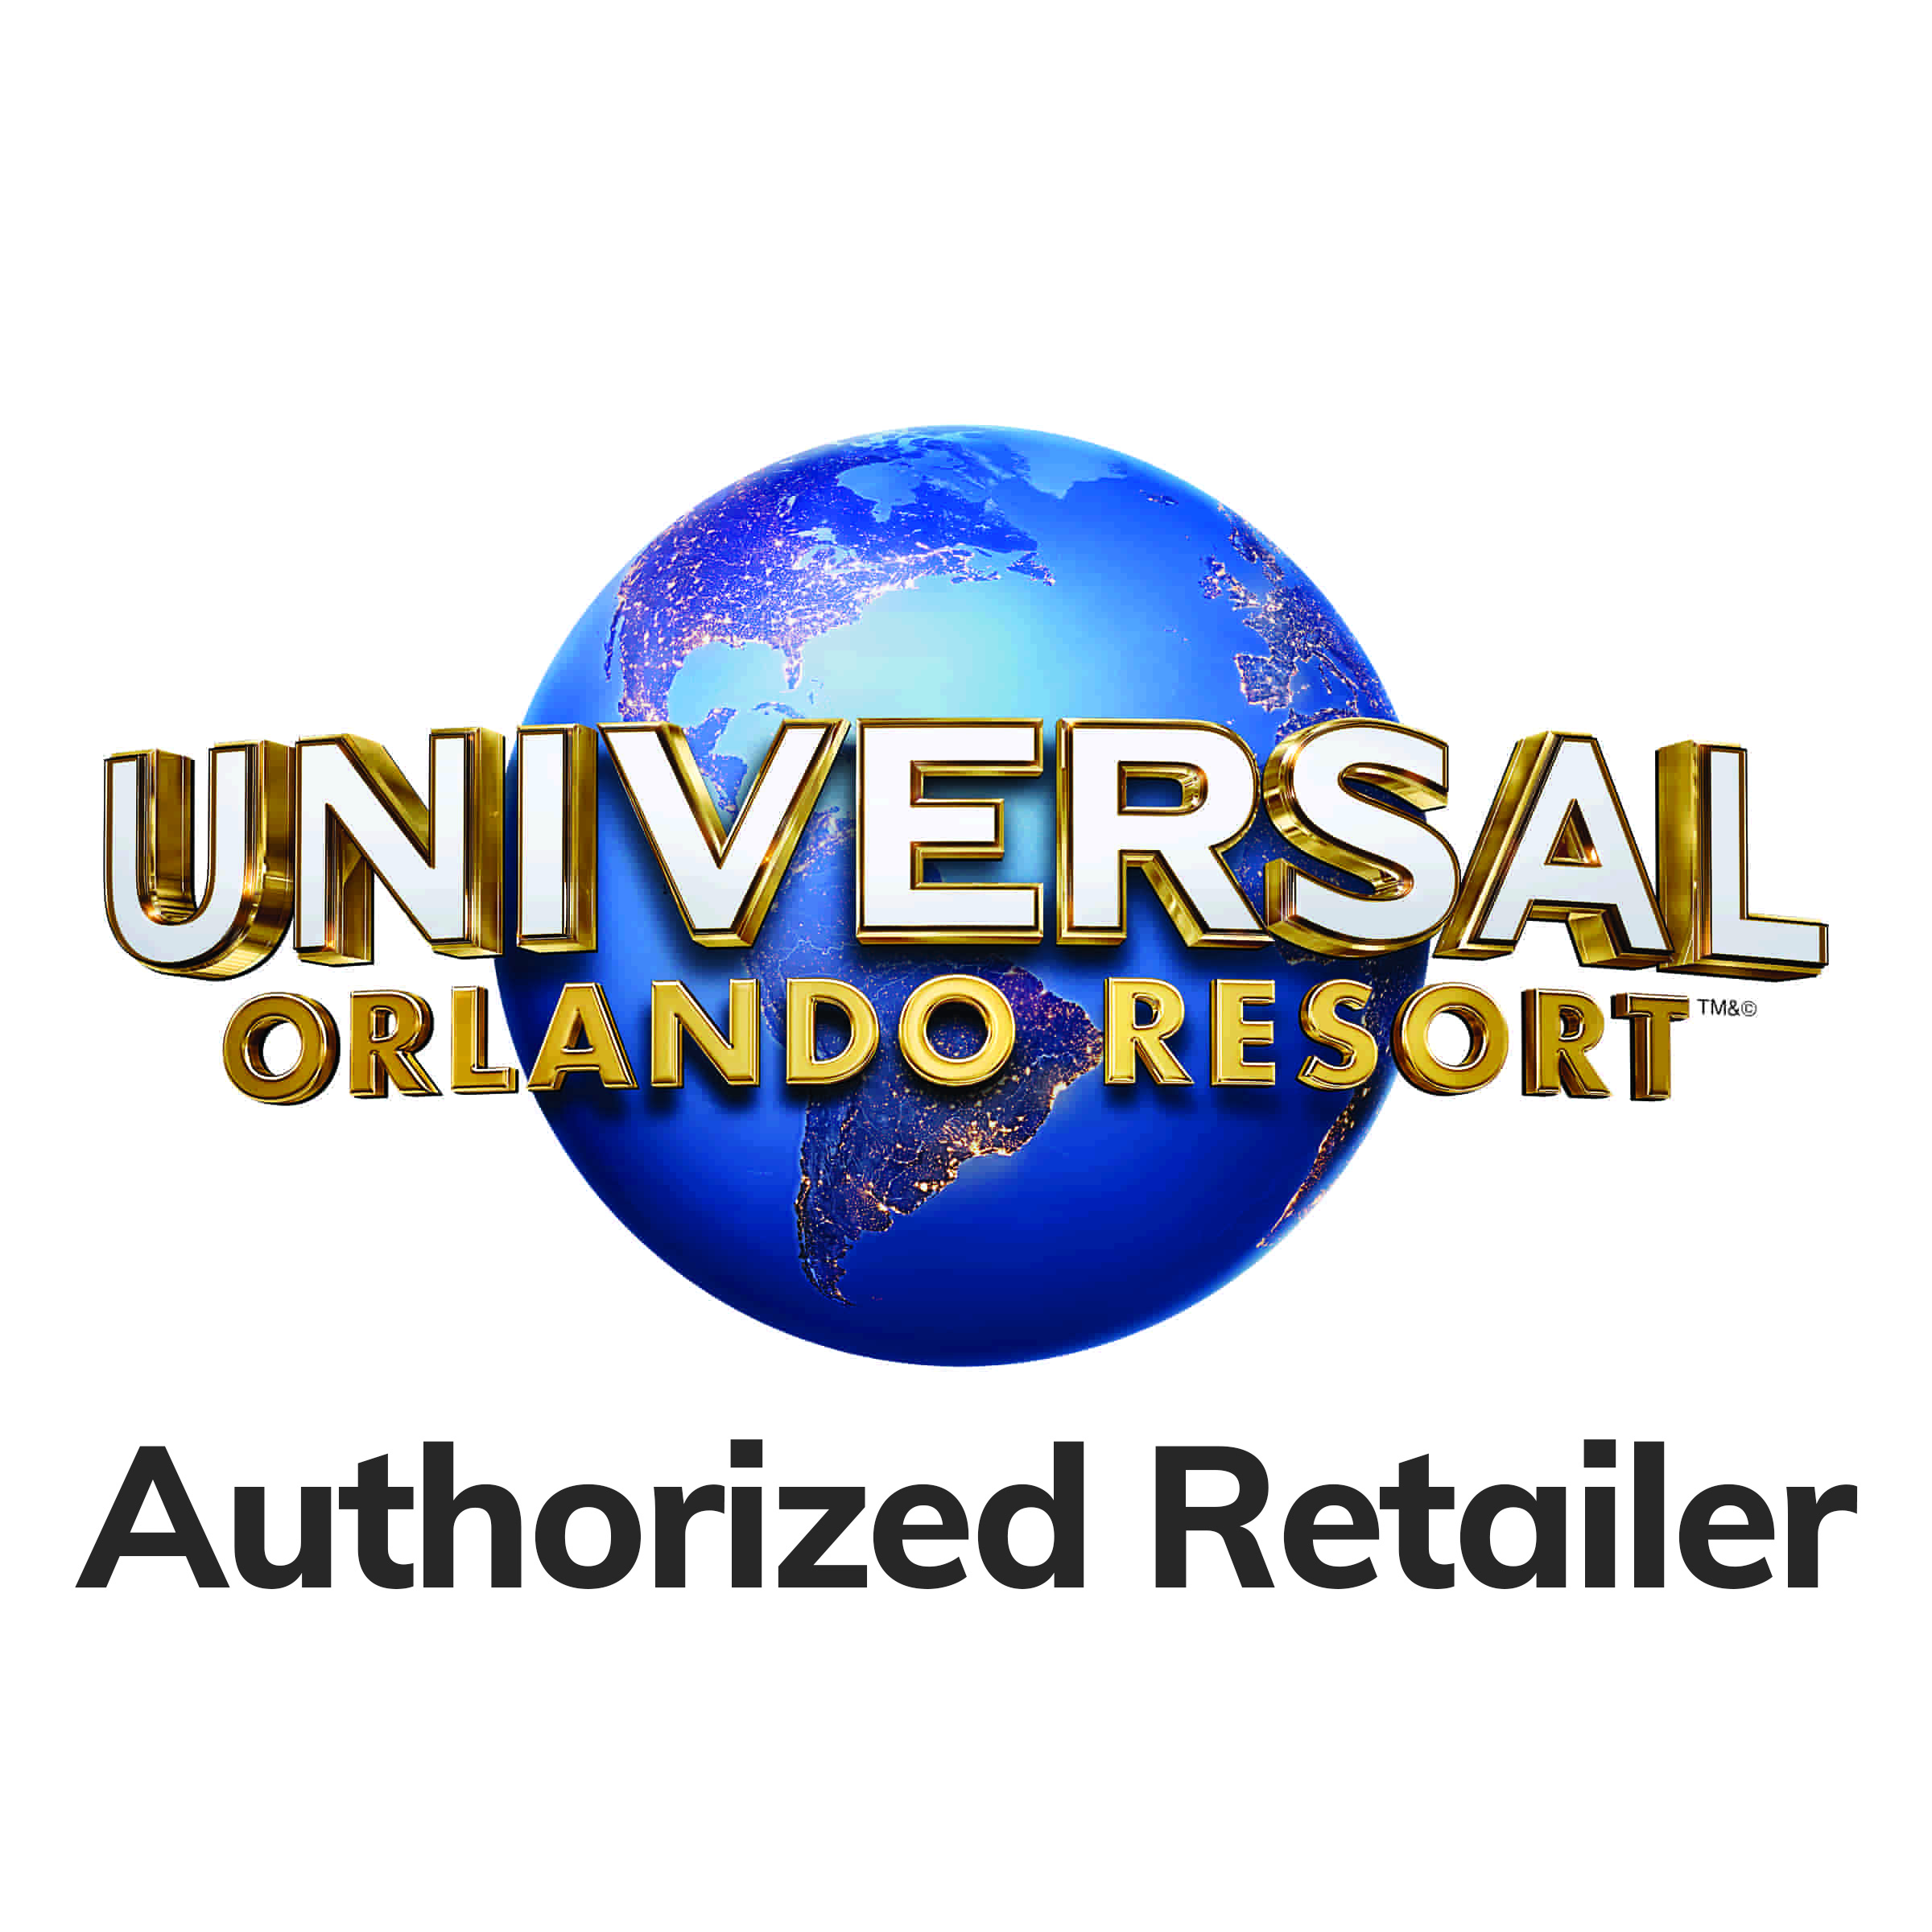 We are an authorized retailer